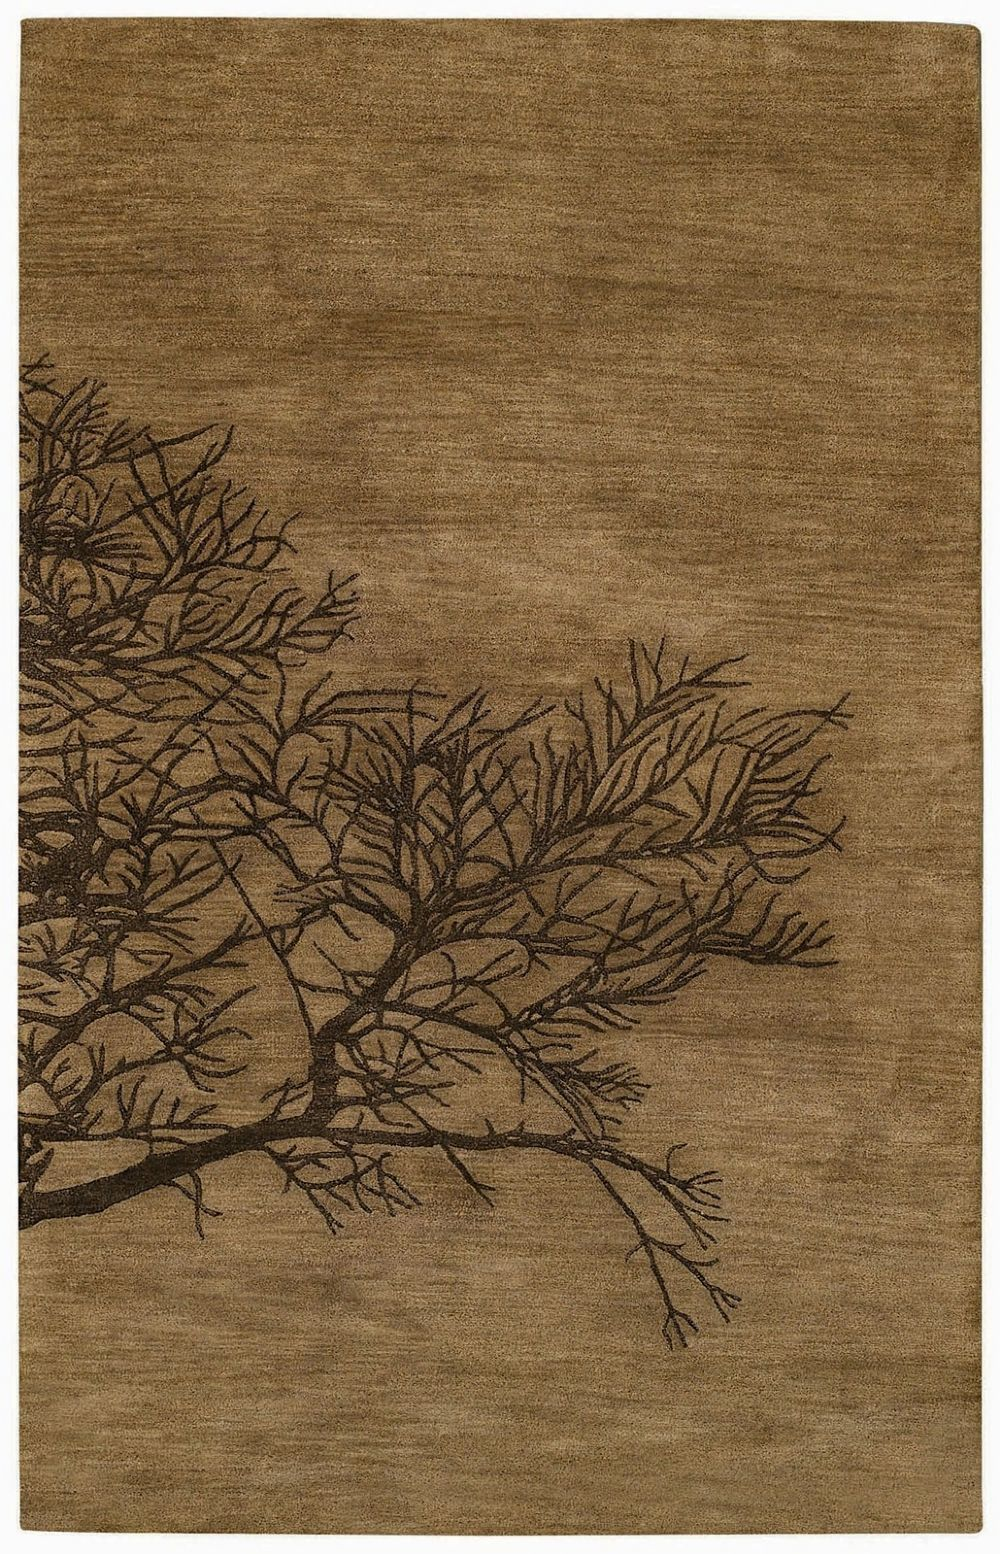 capel desert plateau-shadow branch contemporary area rug collection